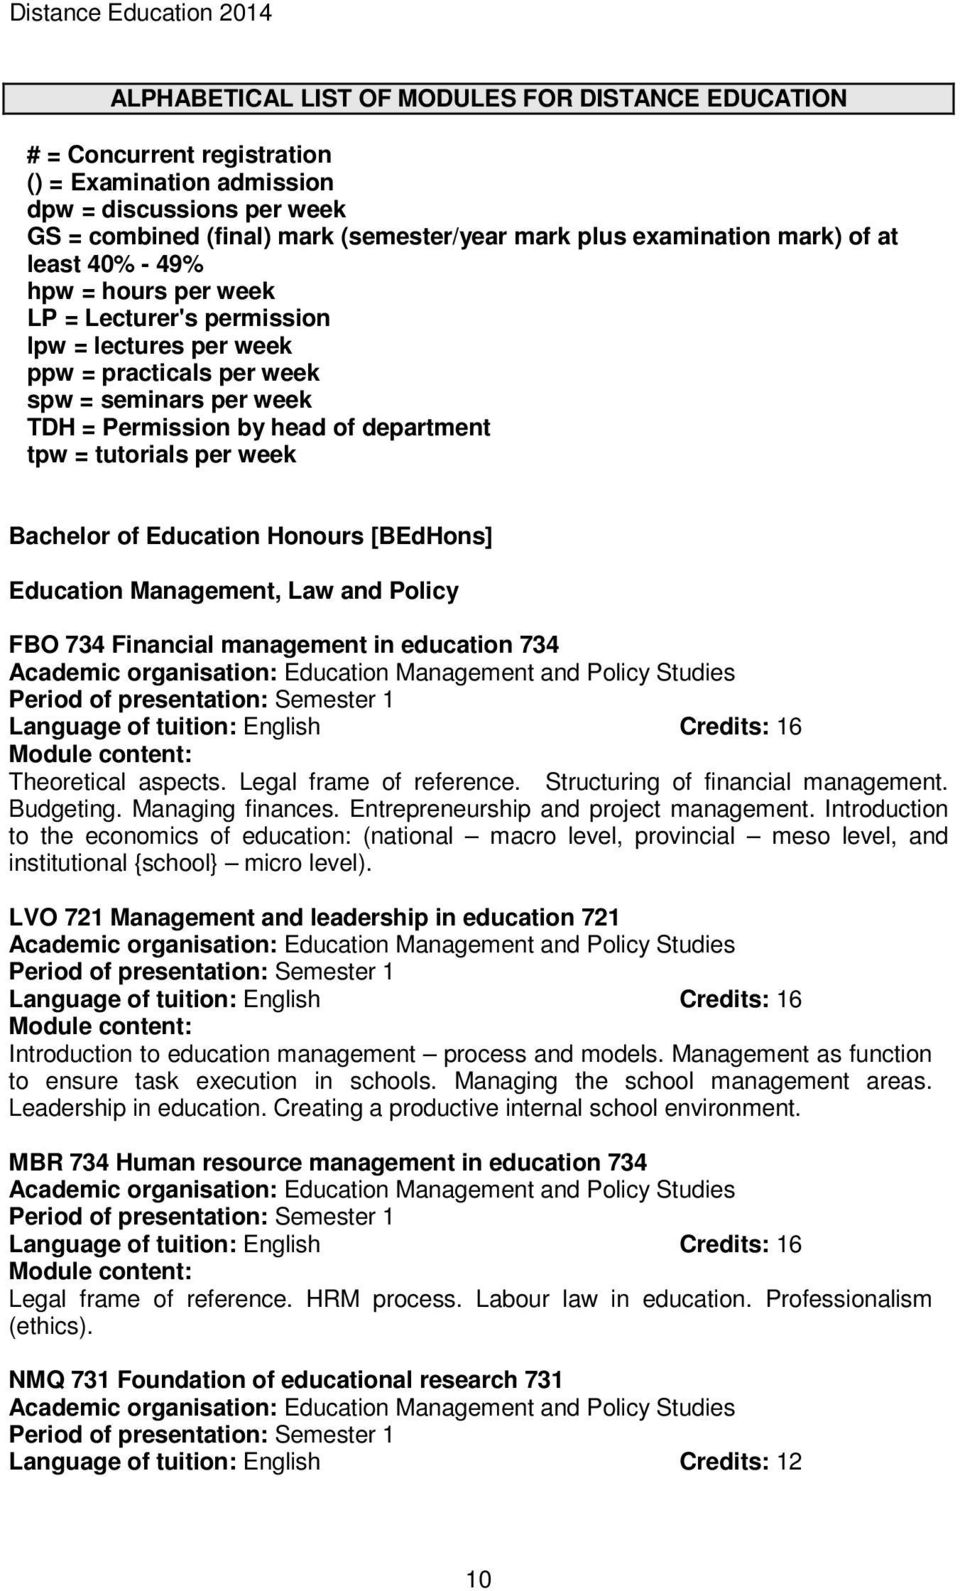 department tpw = tutorials per week Bachelor of Education Honours [BEdHons] Education Management, Law and Policy FBO 734 Financial management in education 734 Academic organisation: Education